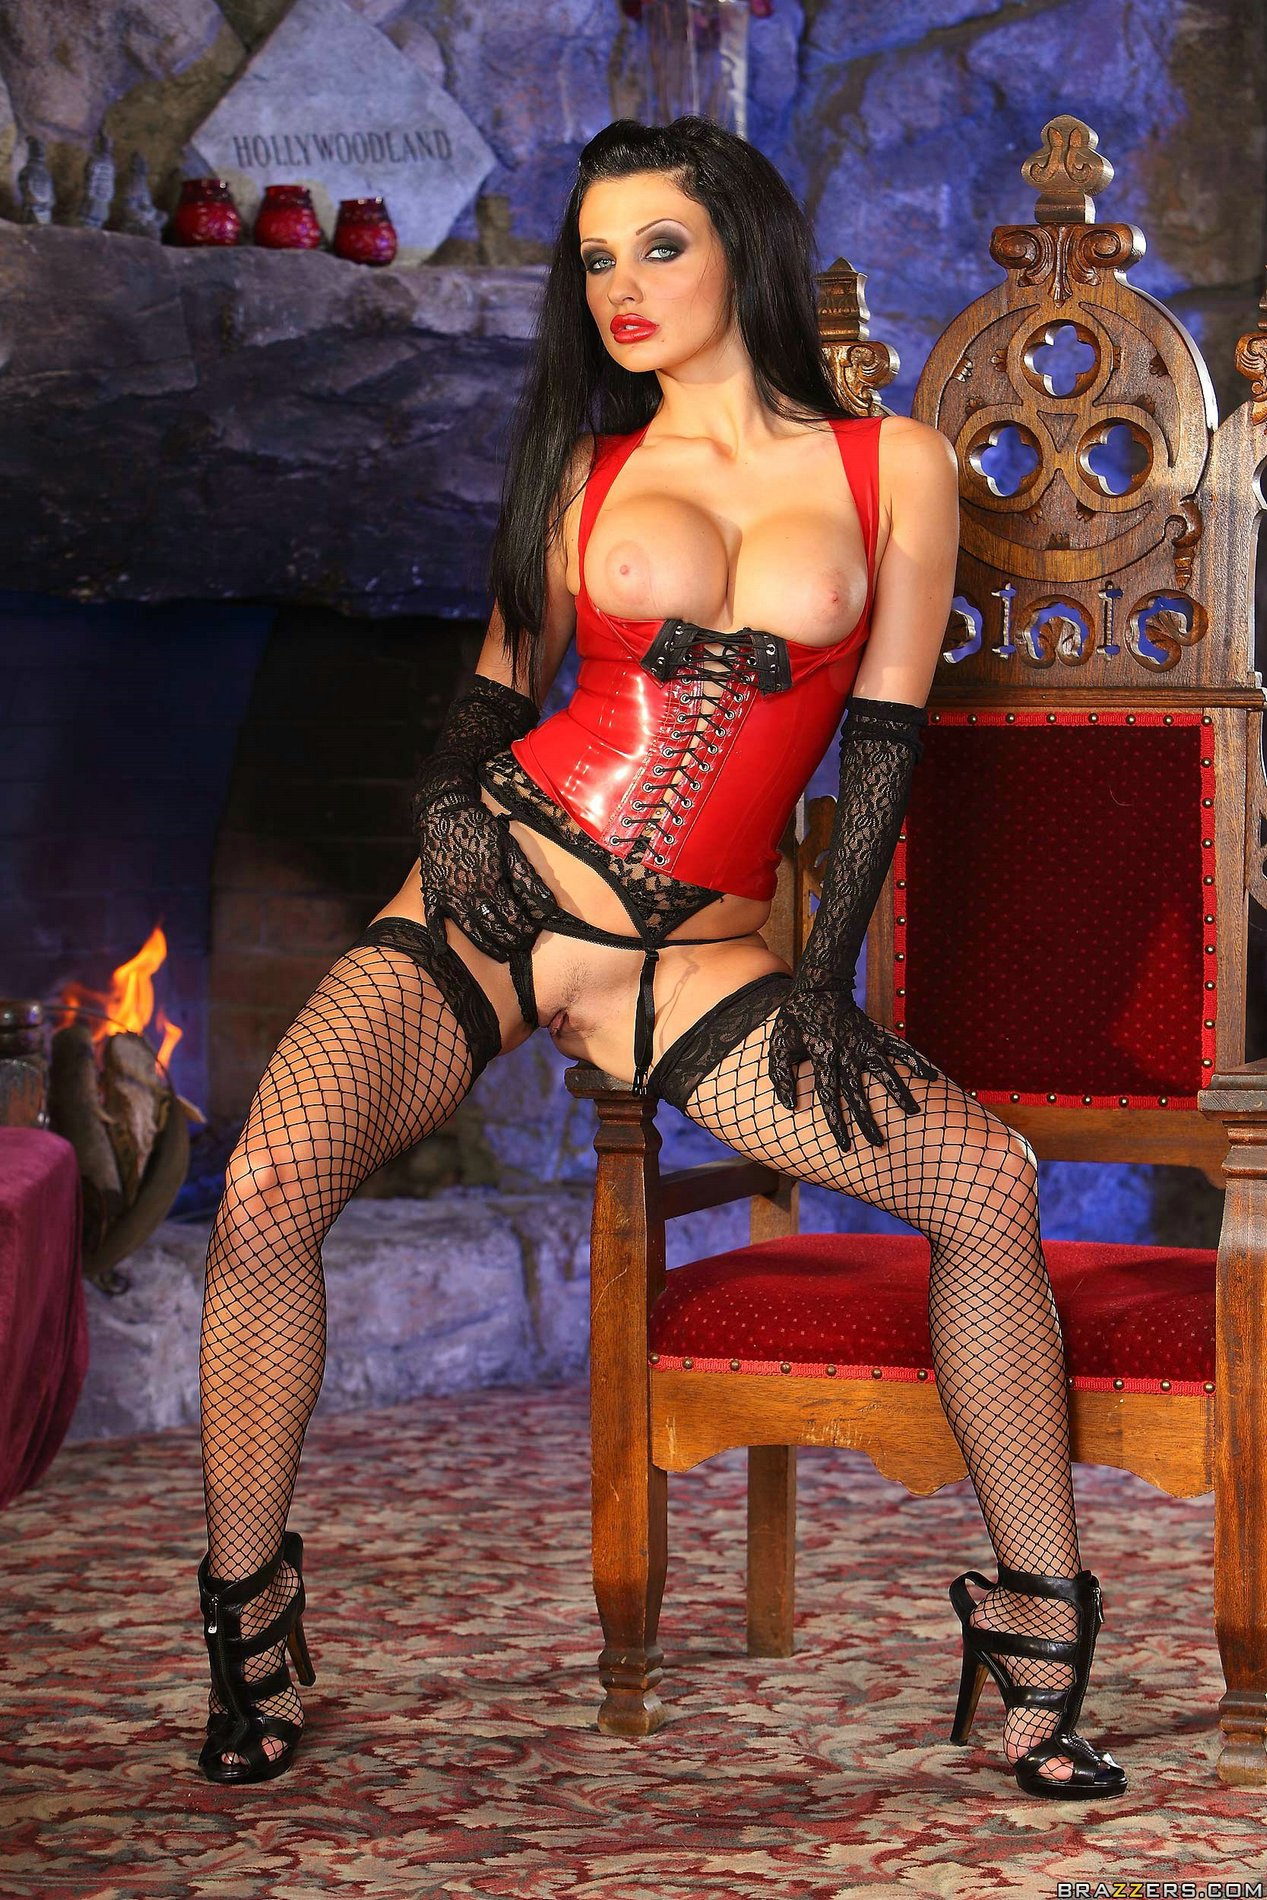 Aletta Ocean In Red Corset And Fishnet Stockings Poses For -1833